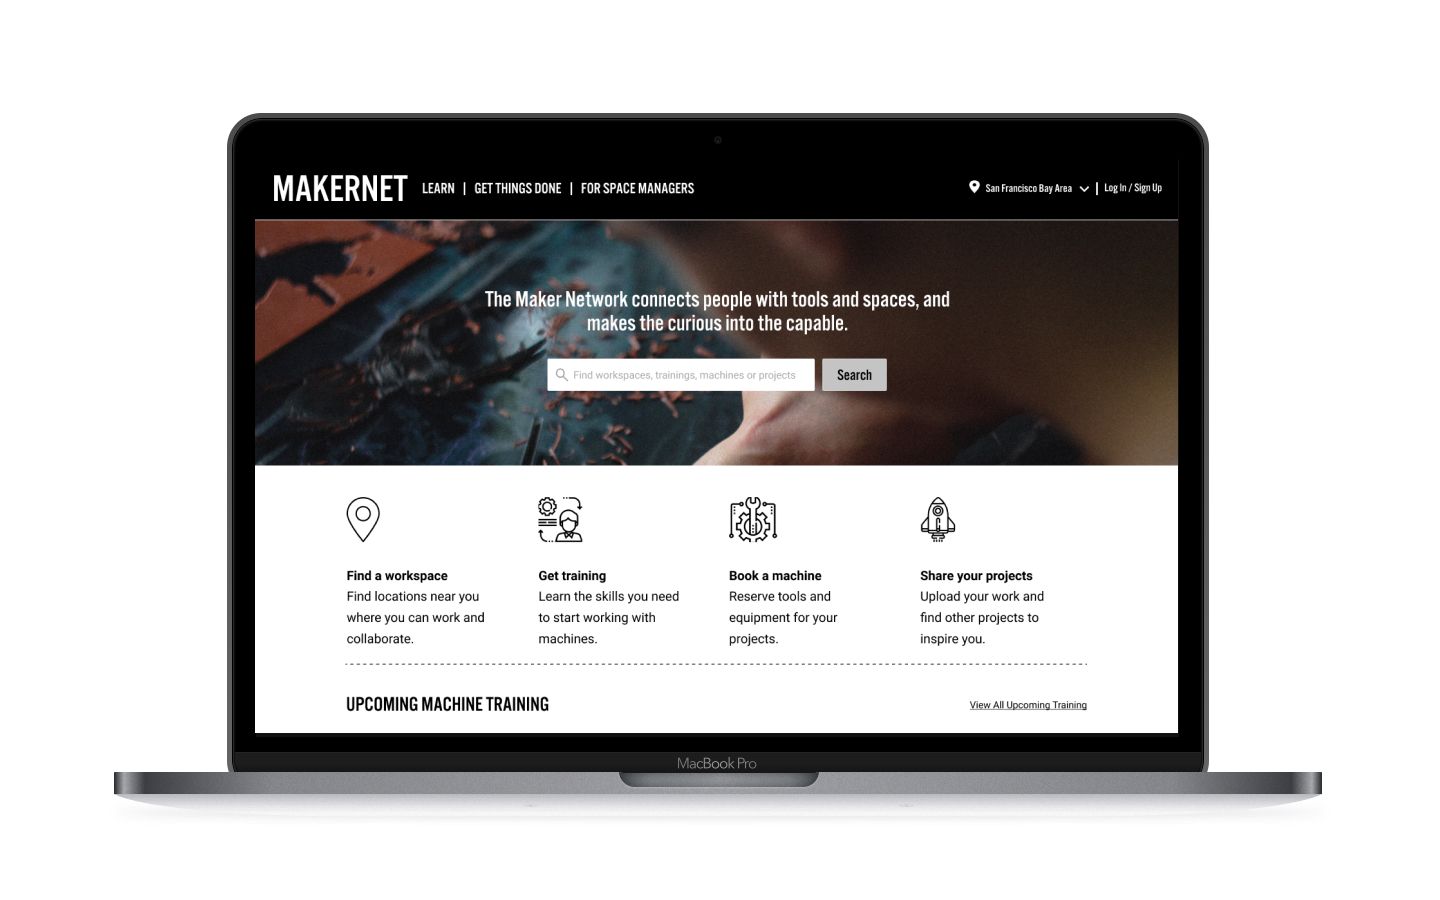 Makernet - Designing a seamless and effective experience for the Maker Community